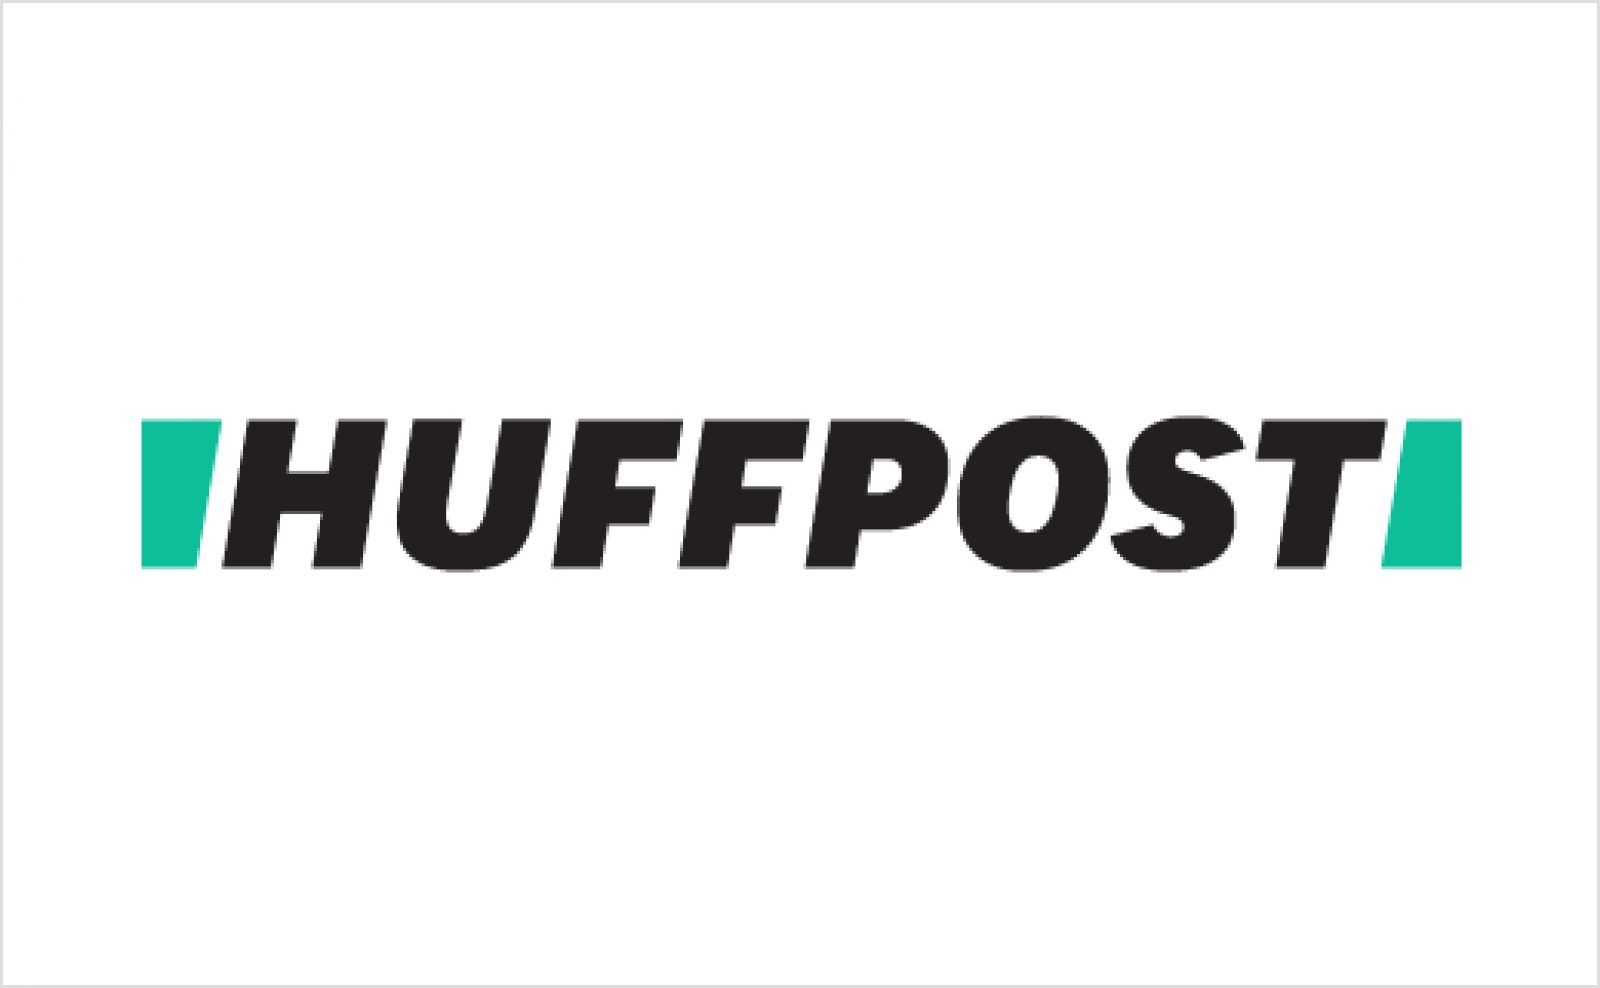 https://www.huffpost.com/entry/doctors-who-ignore-women-health-concerns-advice_l_5c7020a8e4b00eed0833a29c